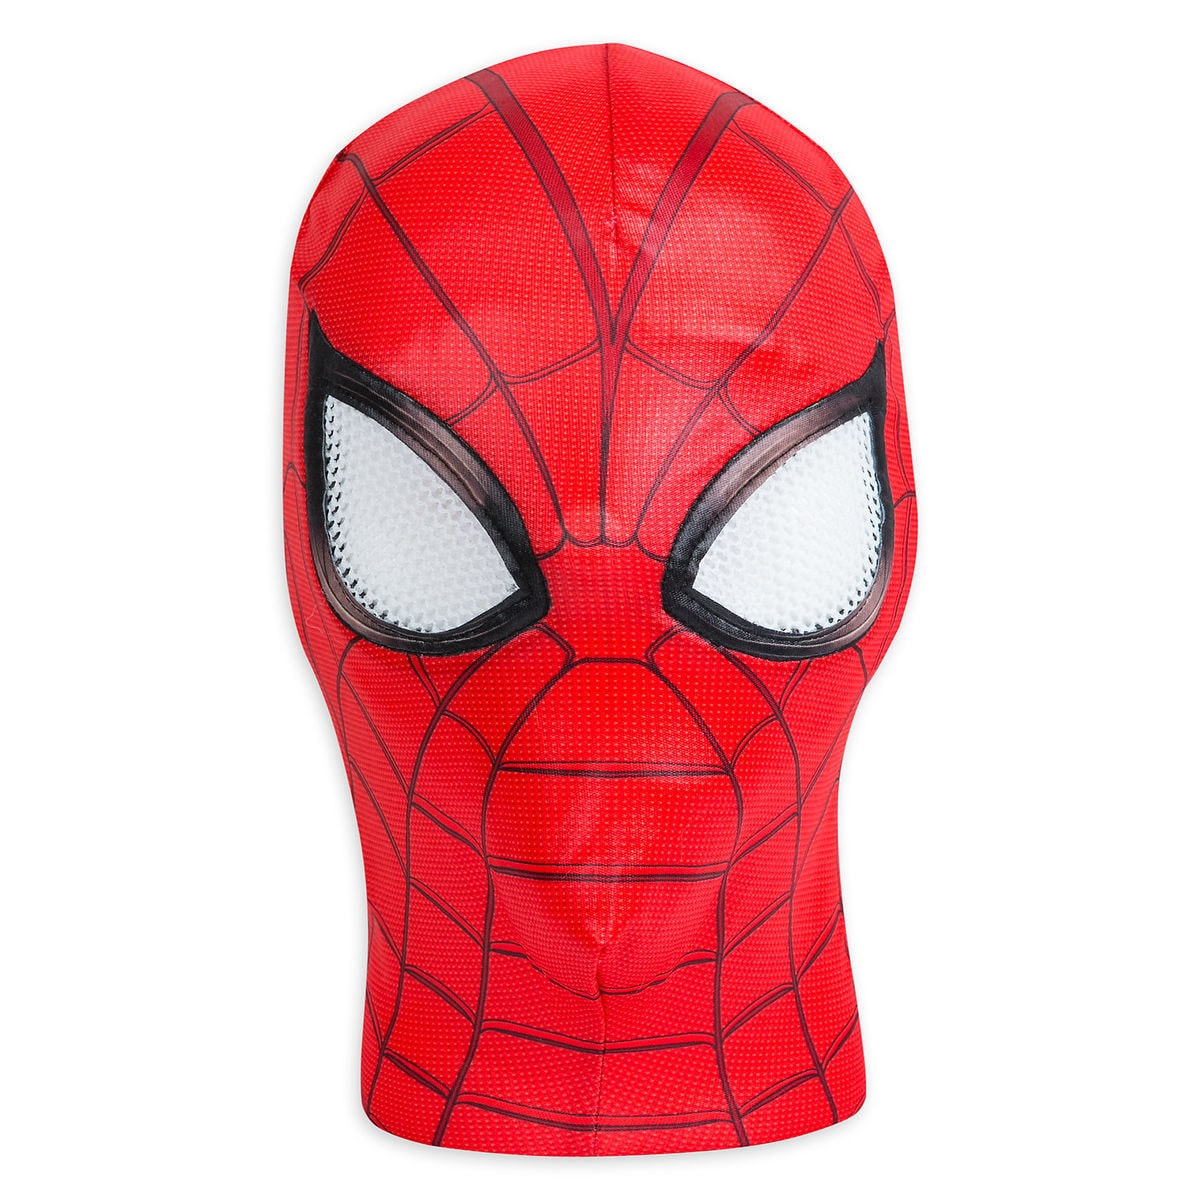 Product Image of Iron Spider Costume for Kids - Marvel s Avengers  Infinity  War   10 2ed7657722723